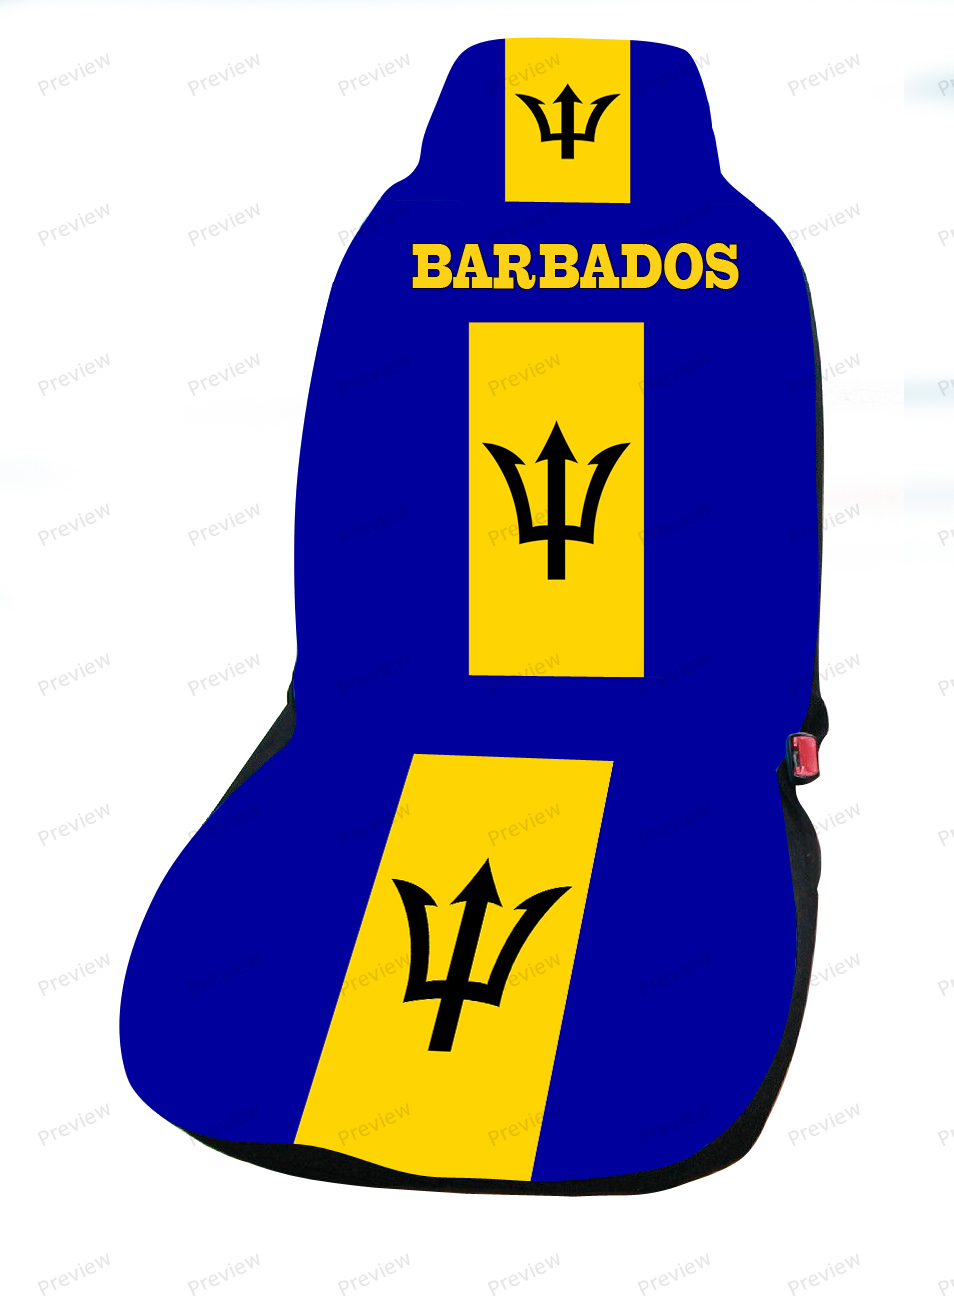 Barbados image car cover seat